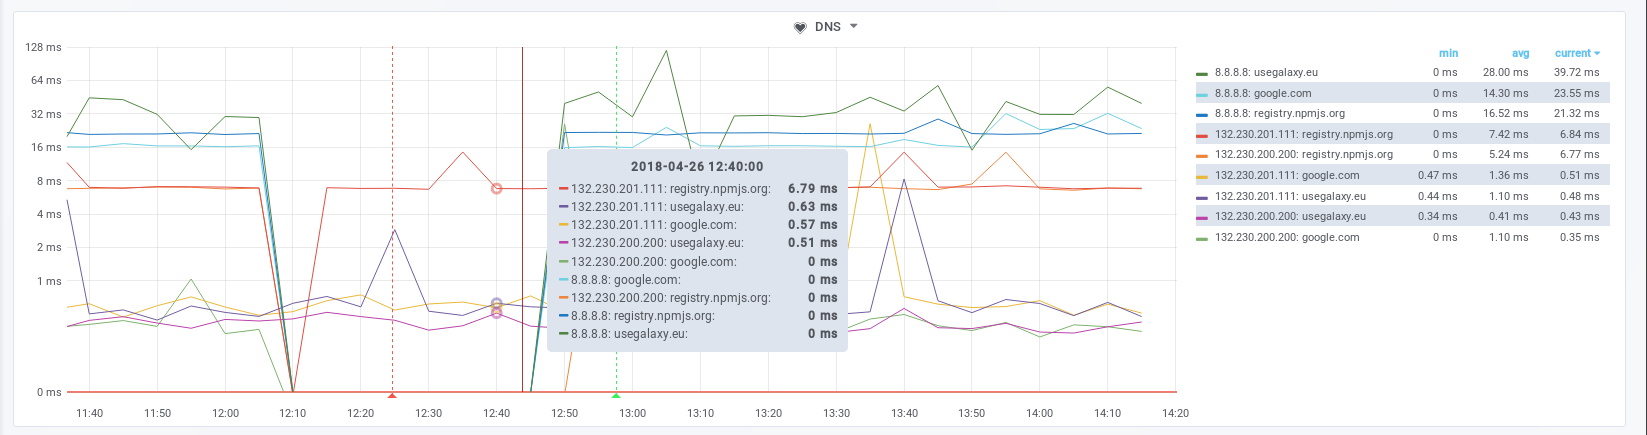 DNS providers failing to respond to requests.